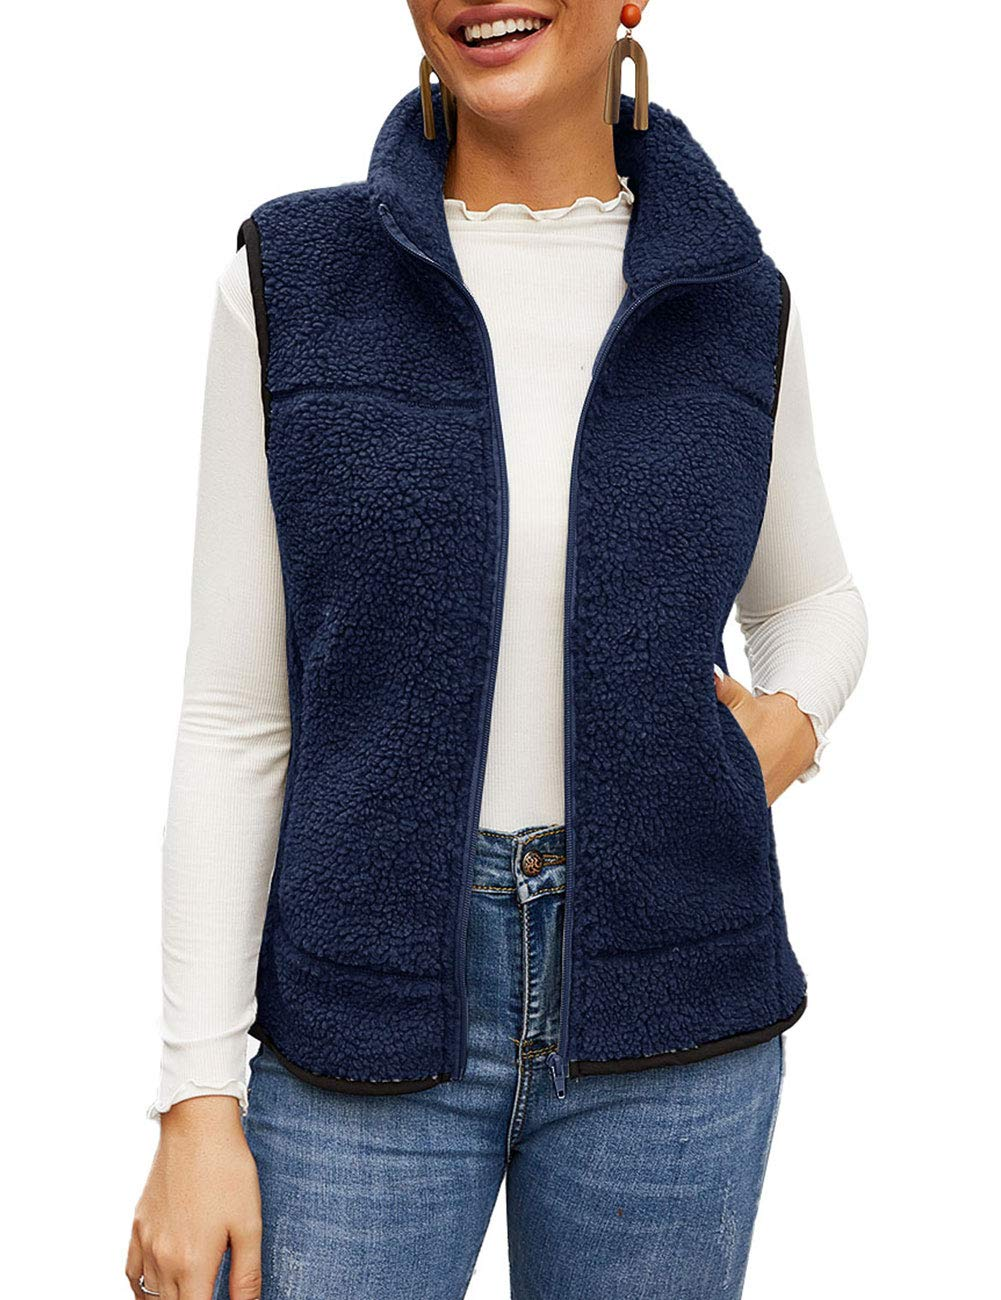 MEROKEETY Women's Slim Fall Quilted Herringbone Puffer Vest with Zipper by MEROKEETY